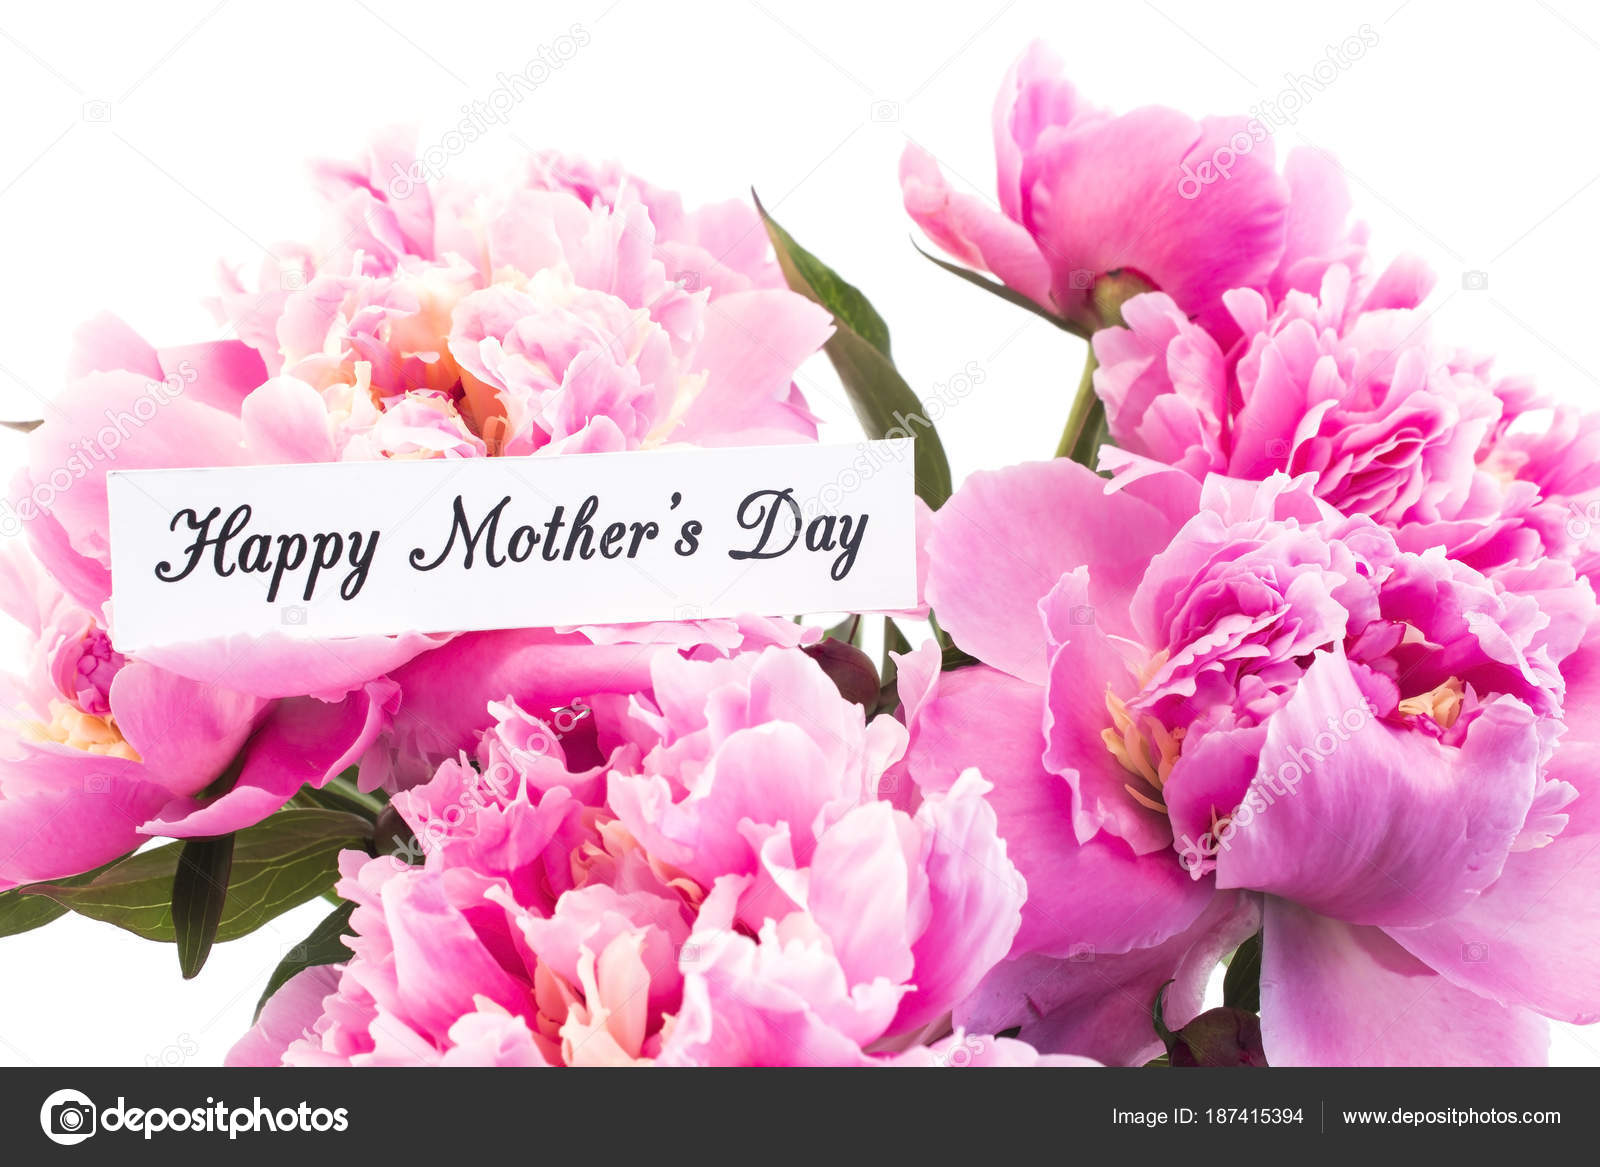 Happy Mothers Day Greeting Card With Pink Peonies Stock Photo